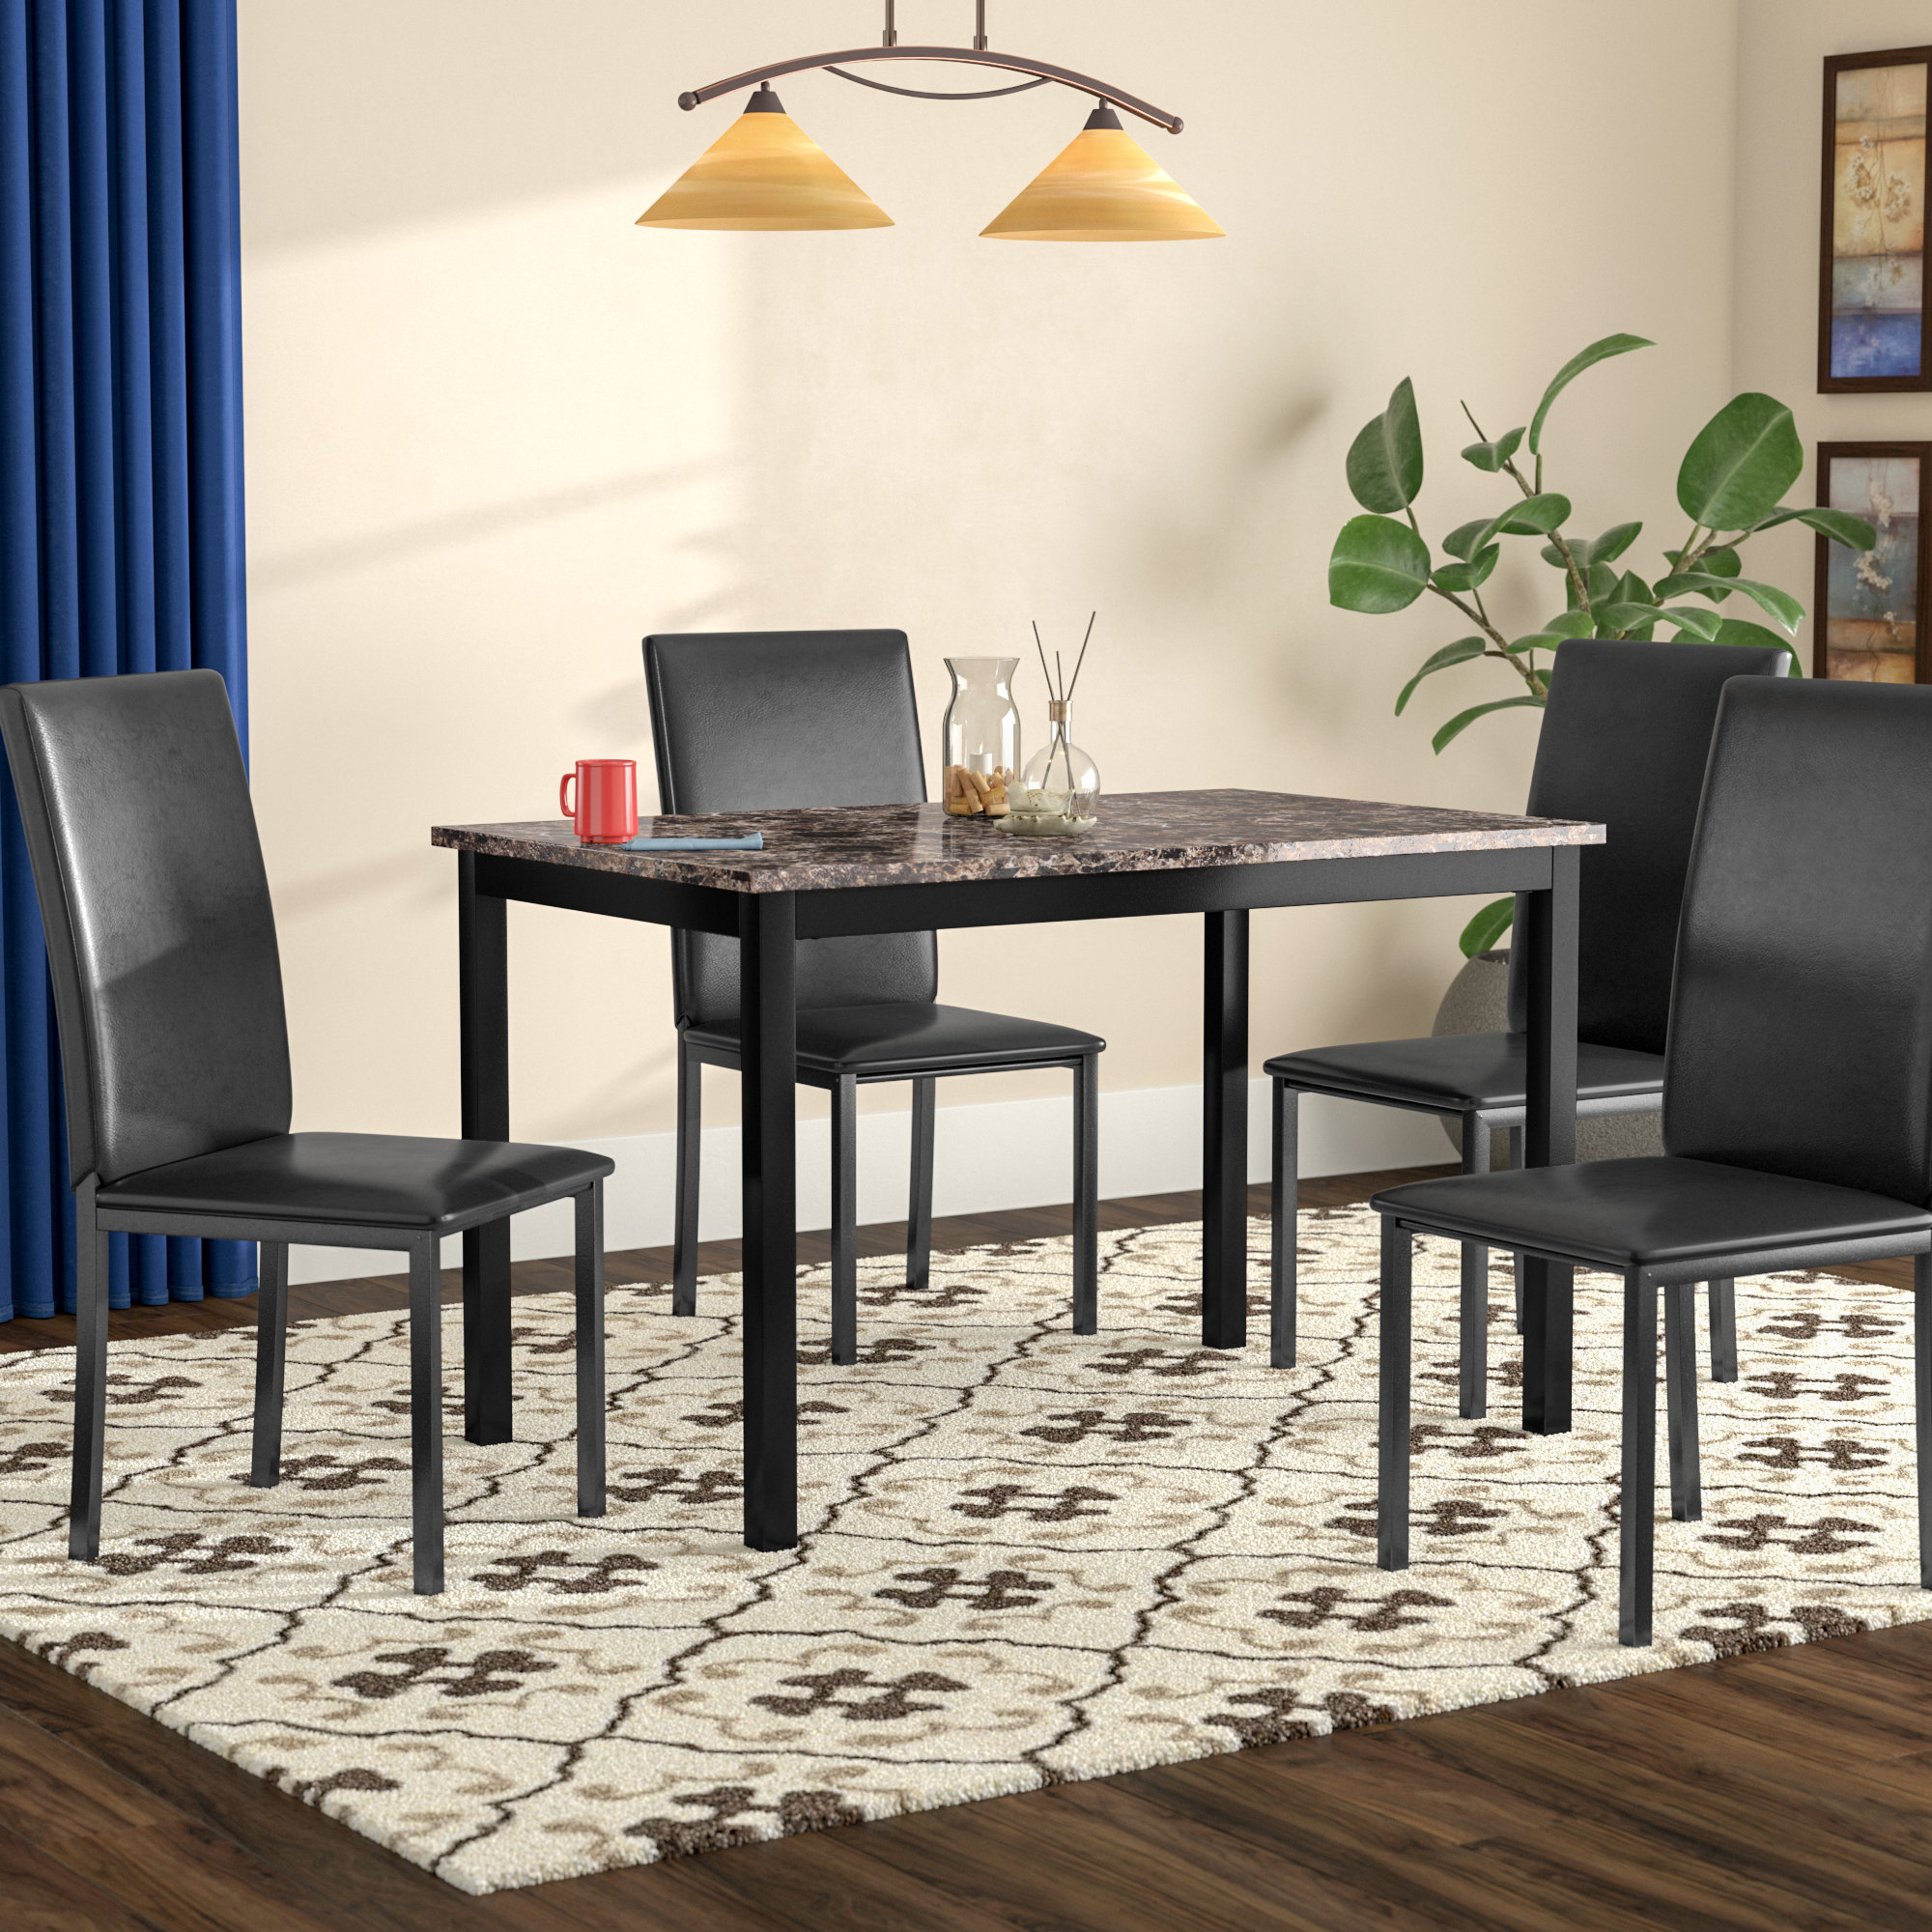 Wayfair Throughout Amir 5 Piece Solid Wood Dining Sets (Set Of 5) (#19 of 20)